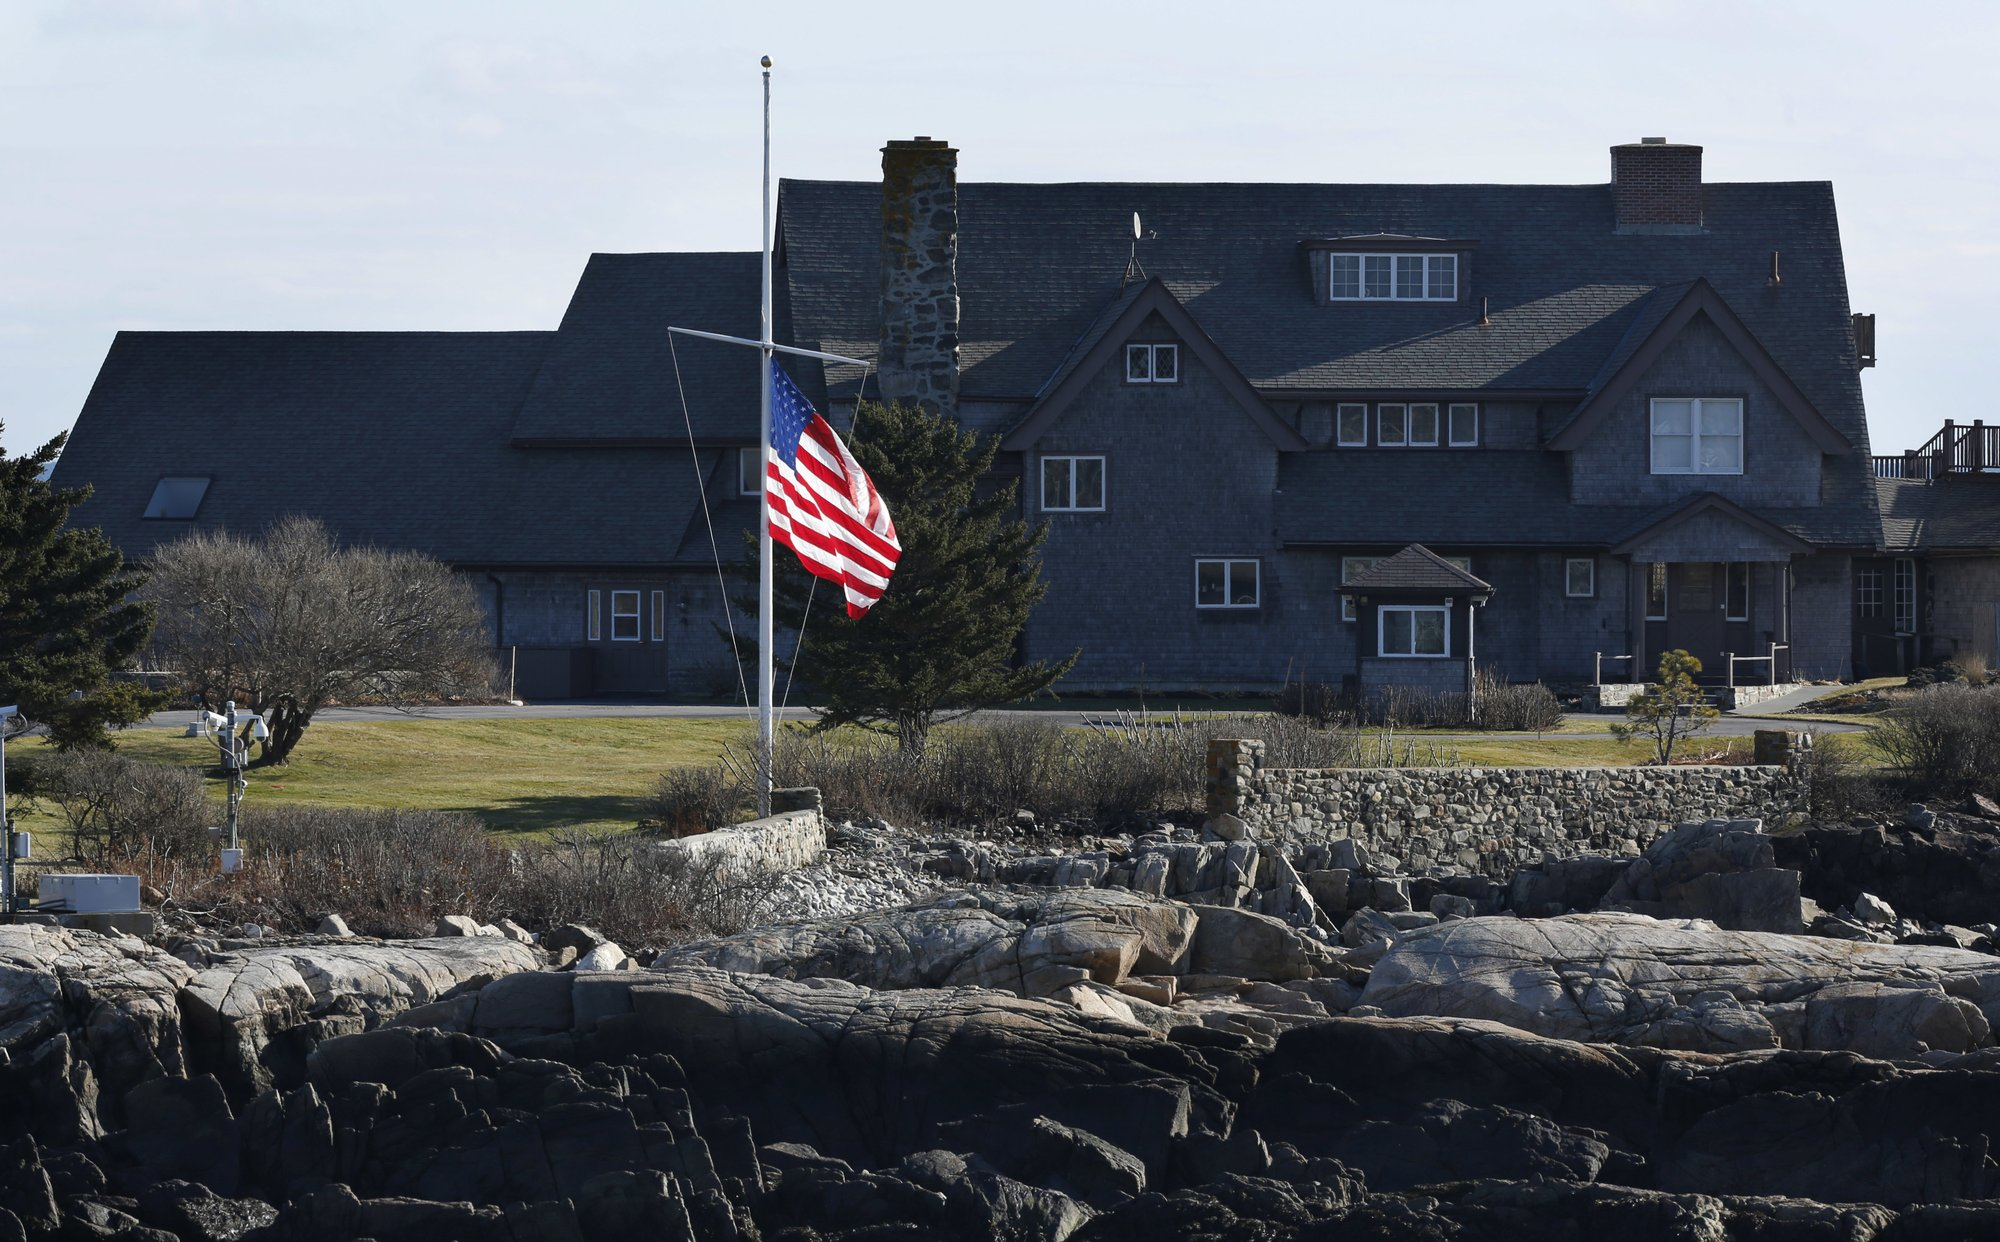 People pay respects for George H.W. Bush in Maine